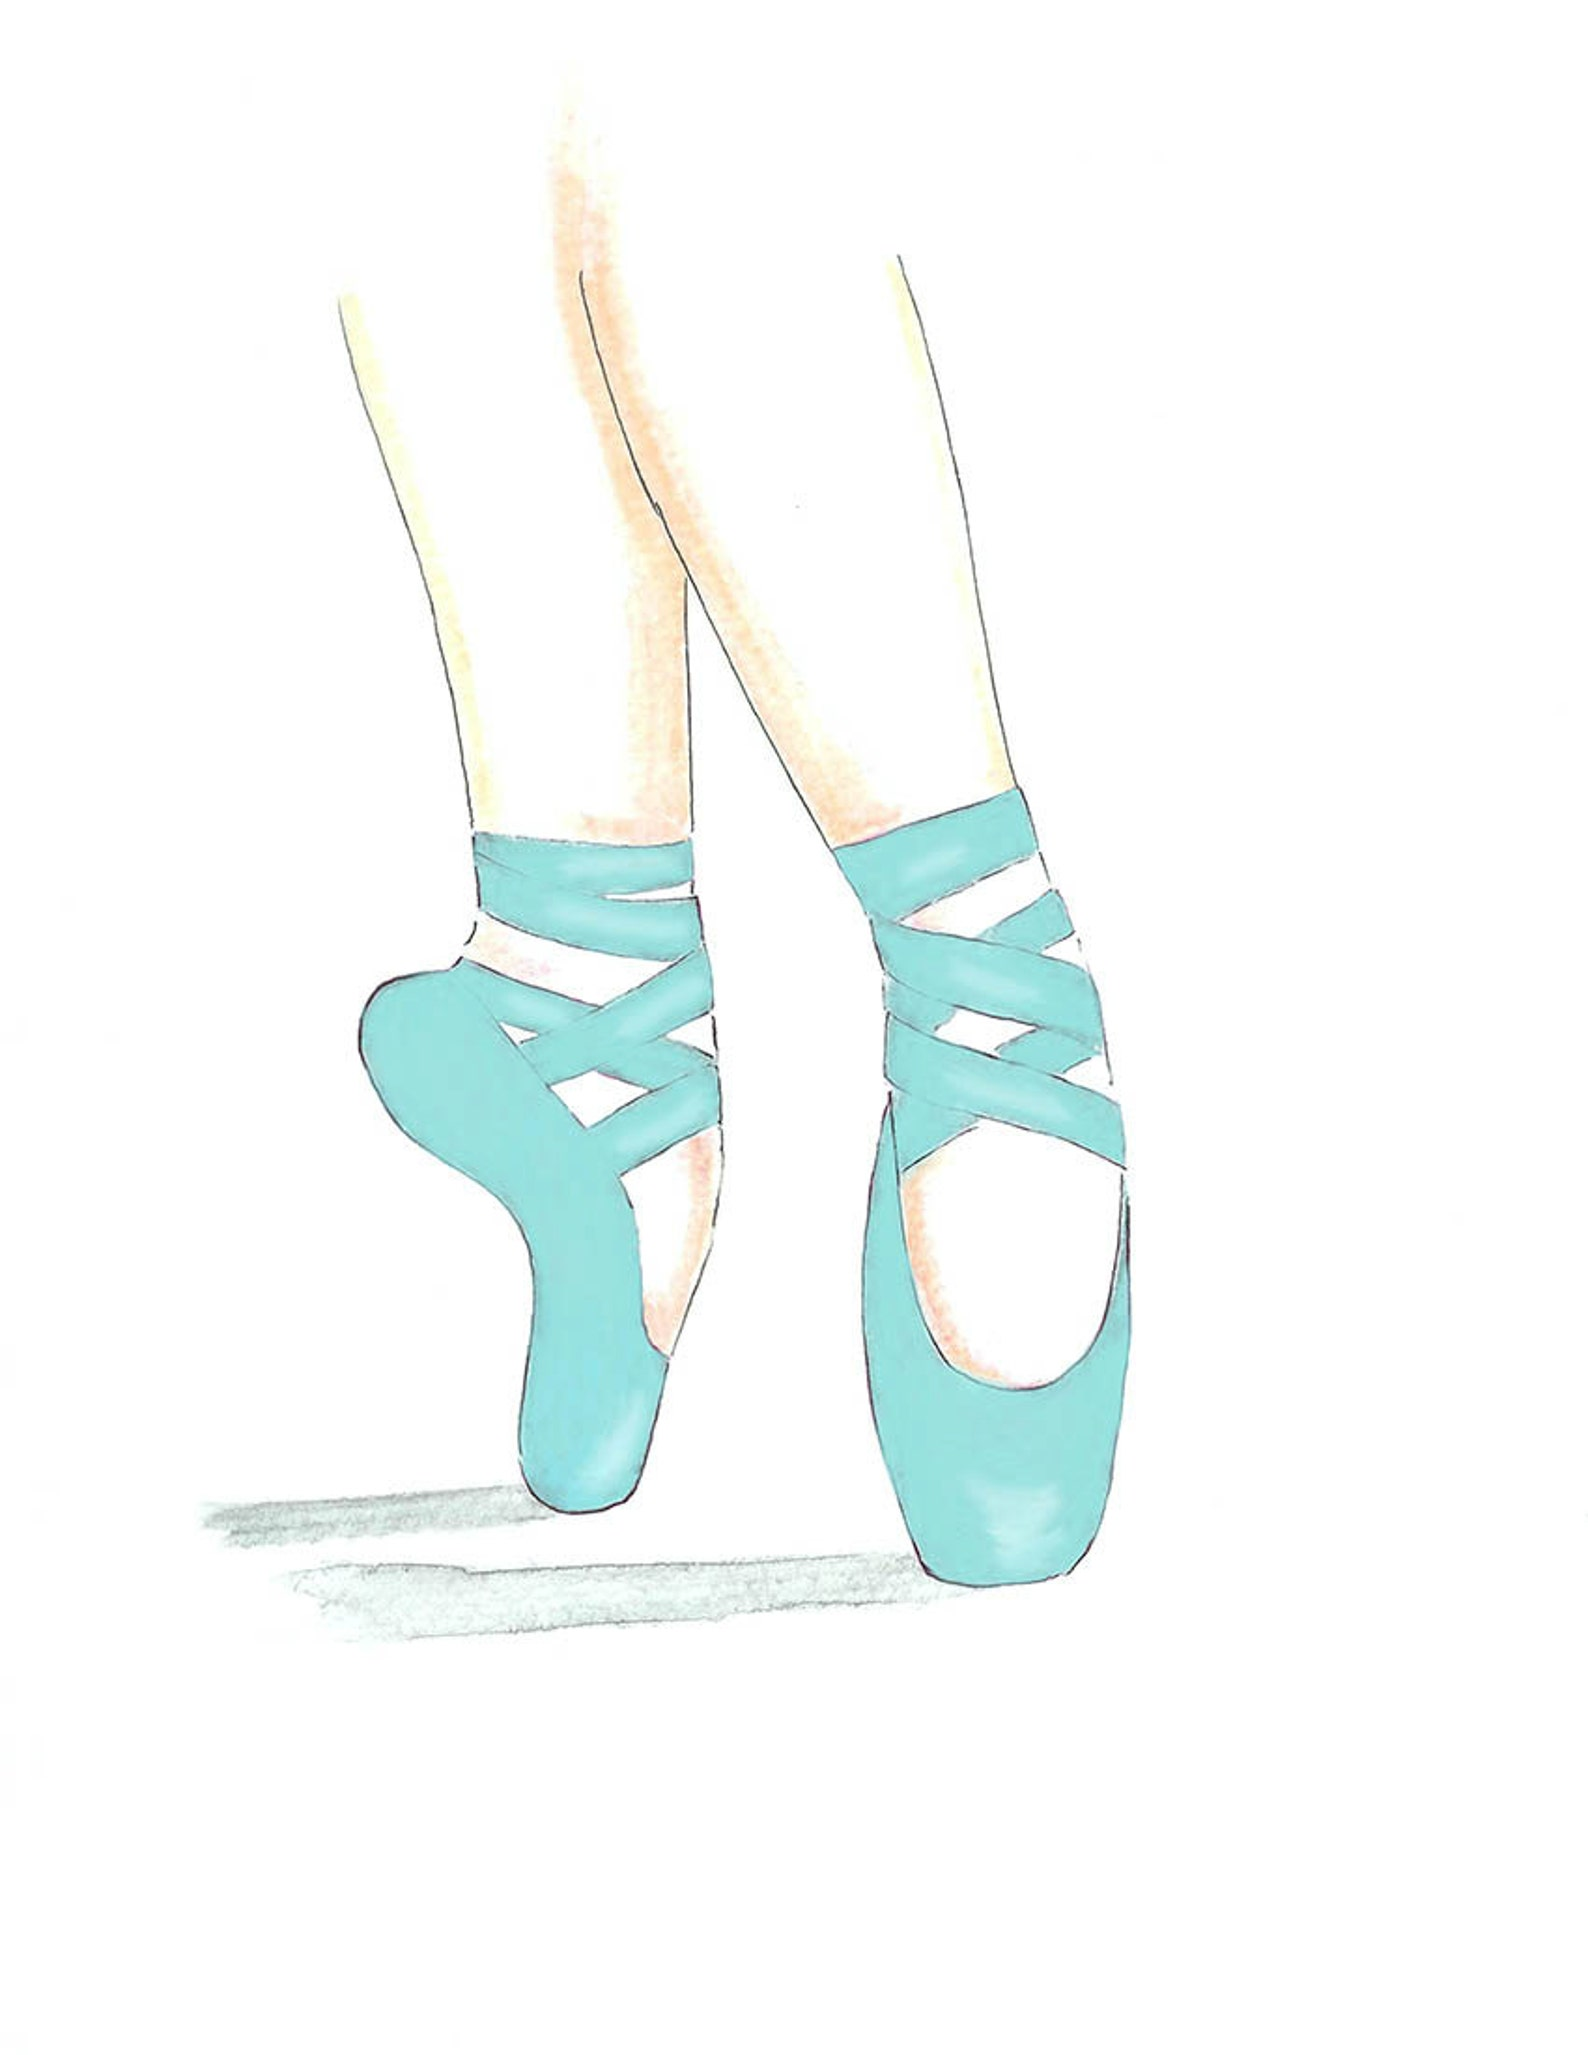 watercolor ballet pointe toe teal shoes illustration, ballerina slippers girl teal bedroom print, tween wall art